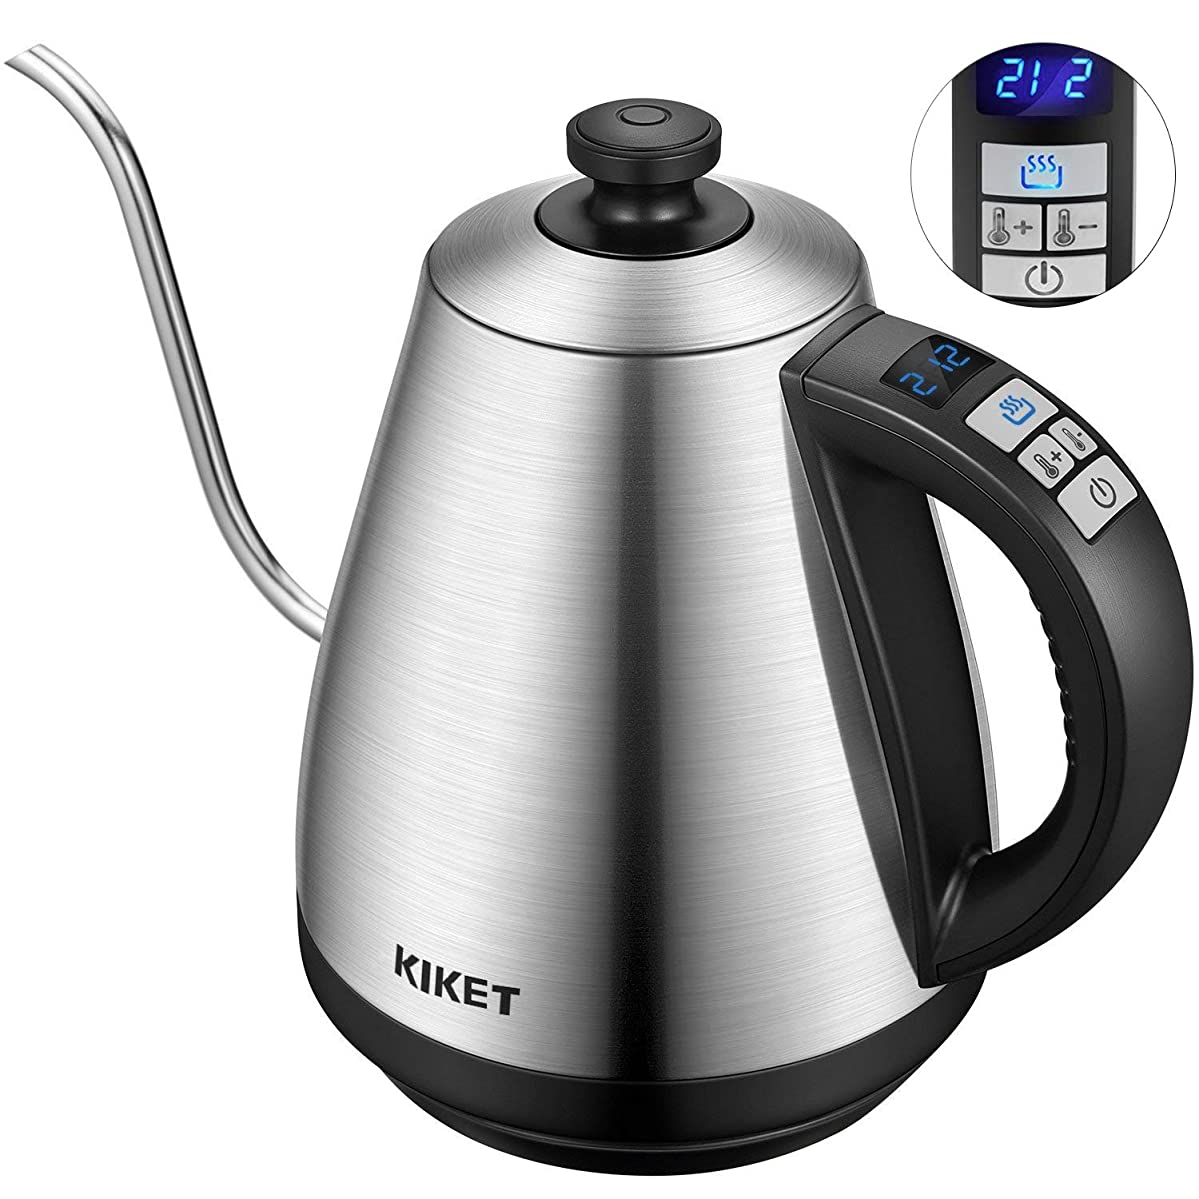 Electric Kettle Temperature Control Gooseneck Kettle Electric with LED Display, Pour Over Coffee Kettle Stainless Steel Water Boiler by KIKET, 1000W